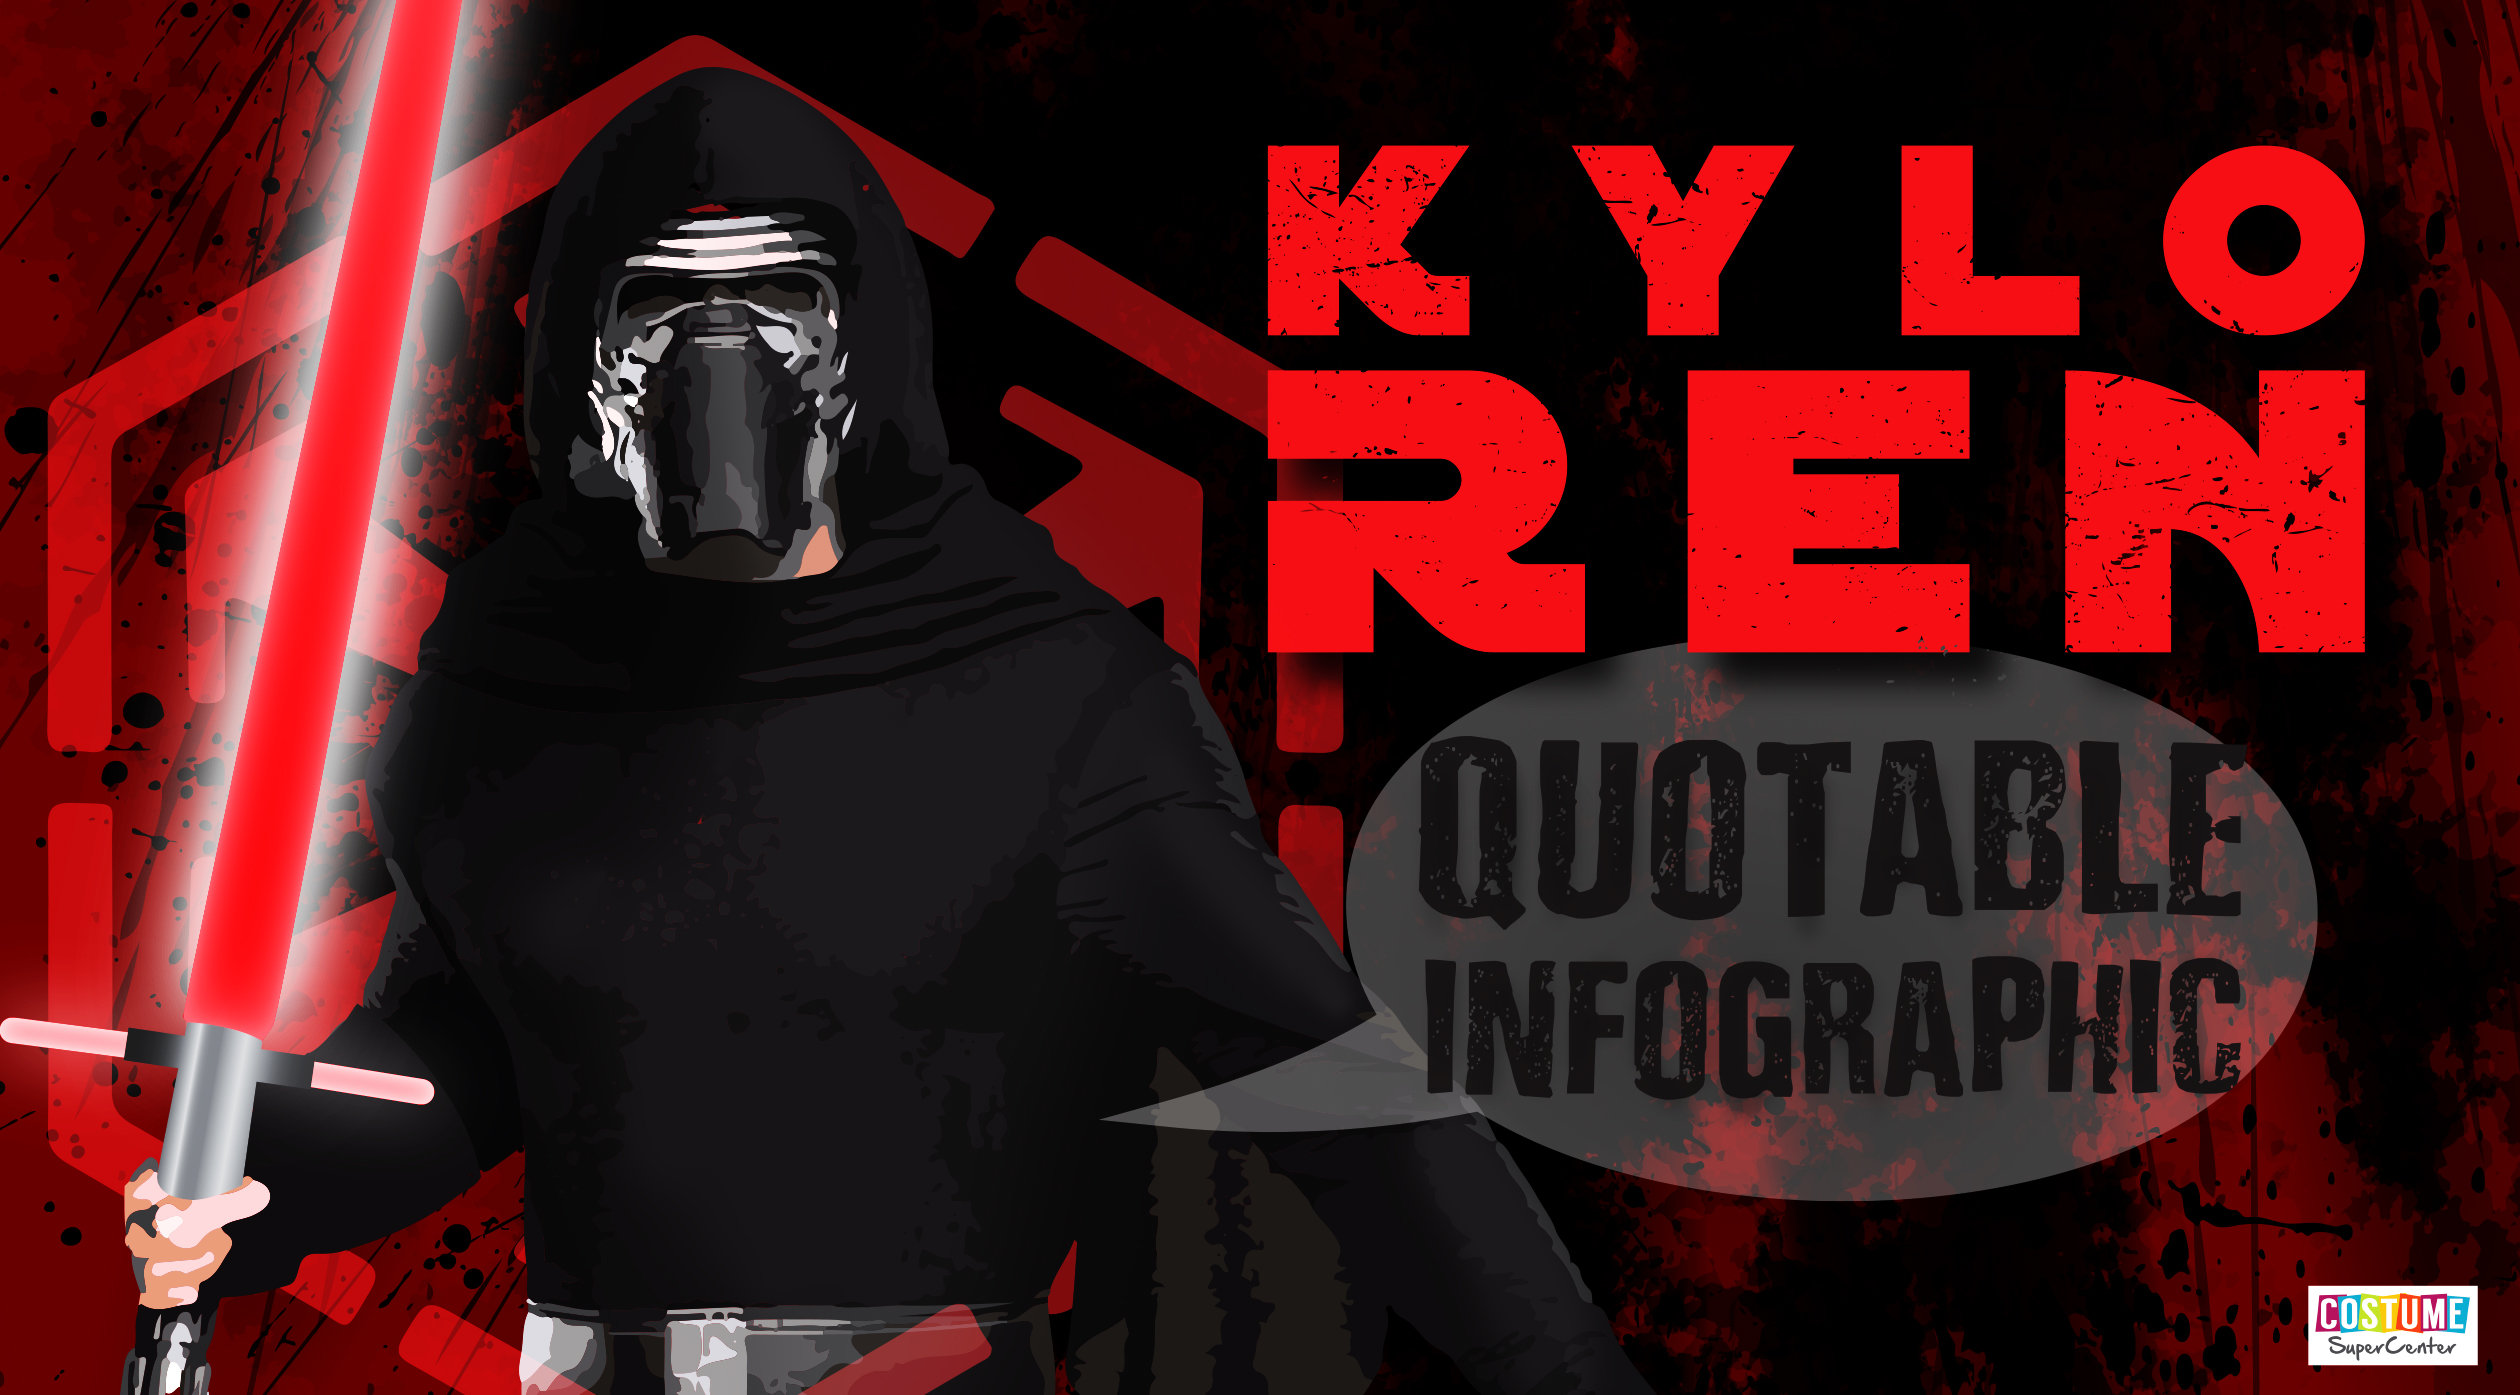 Kylo Rend Quotable